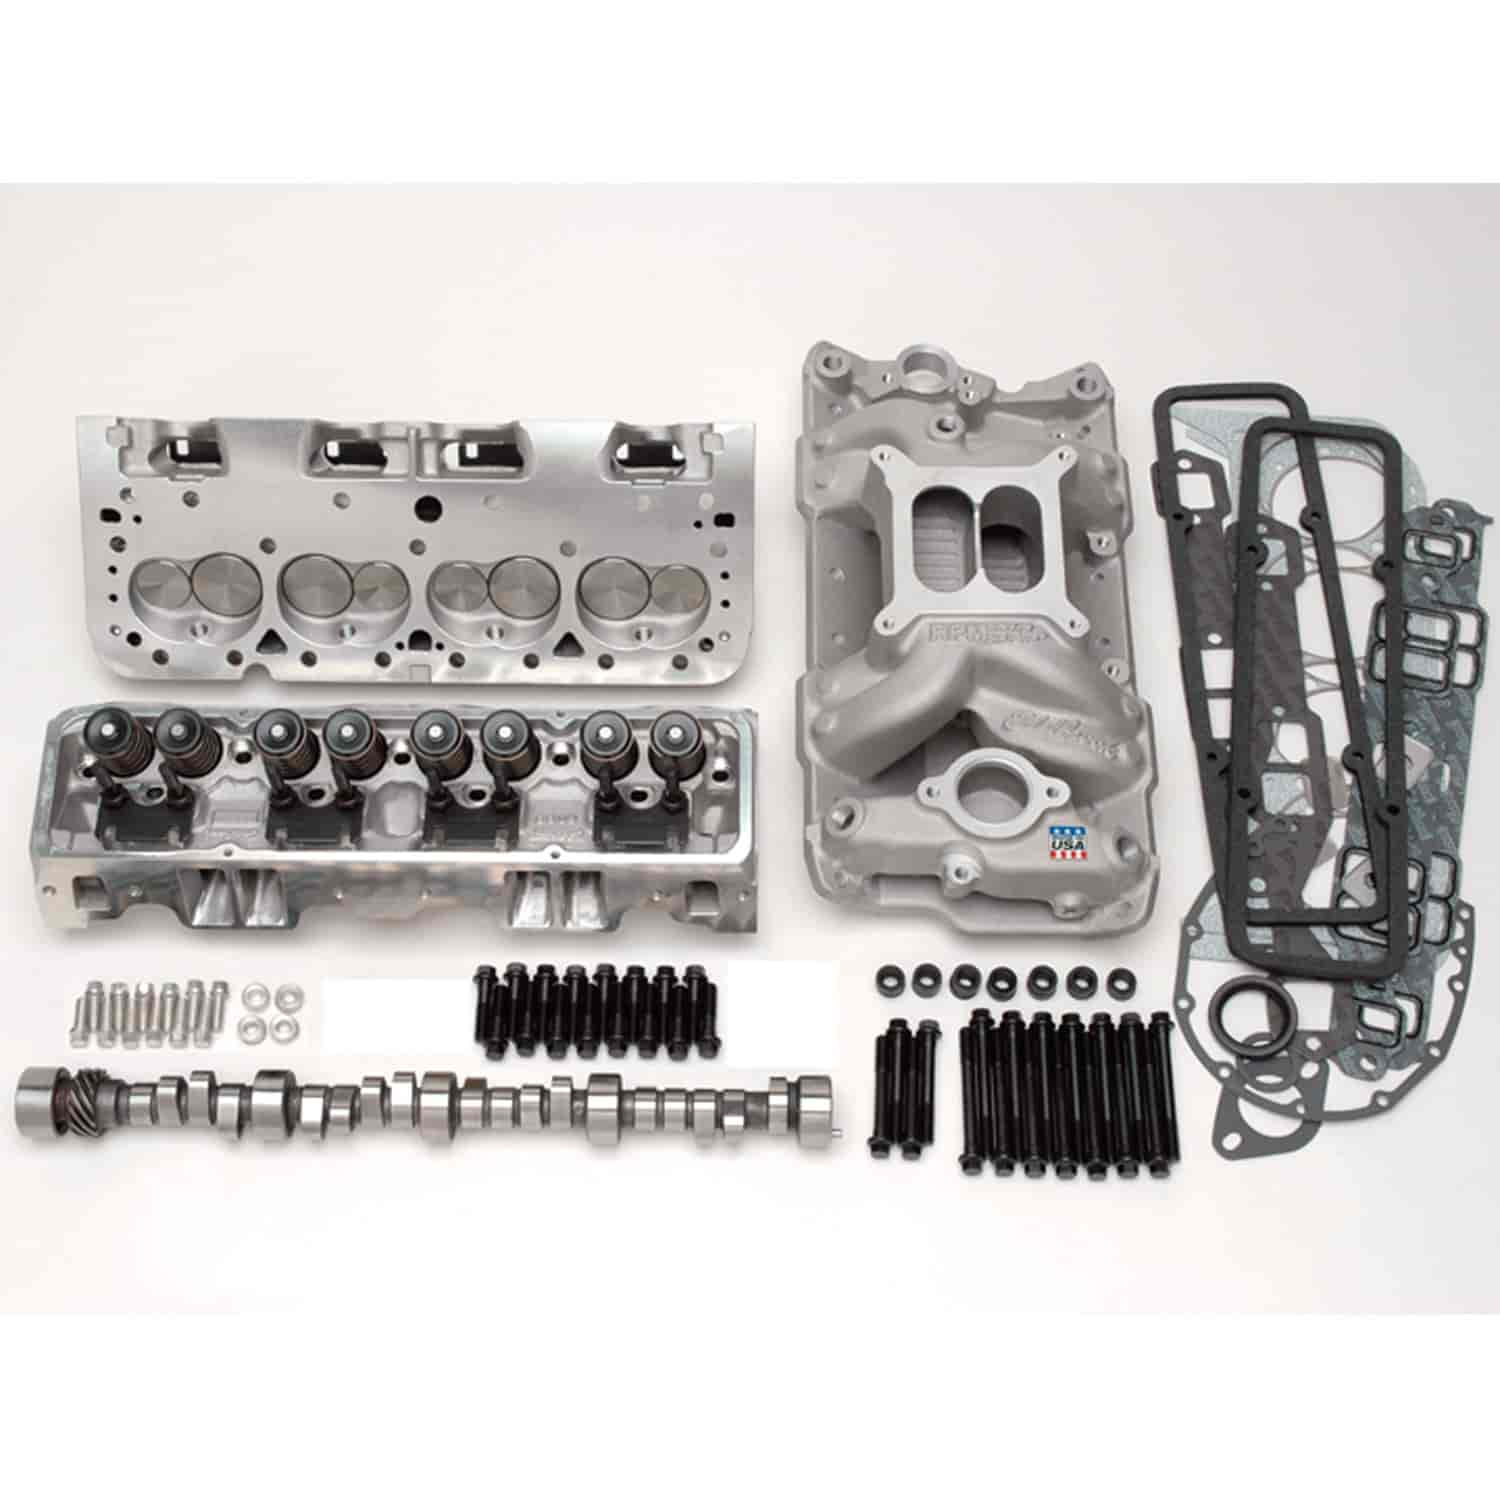 Edelbrock RPM Power Package Kit for 1957-1986 Small Block Chevy 383-427